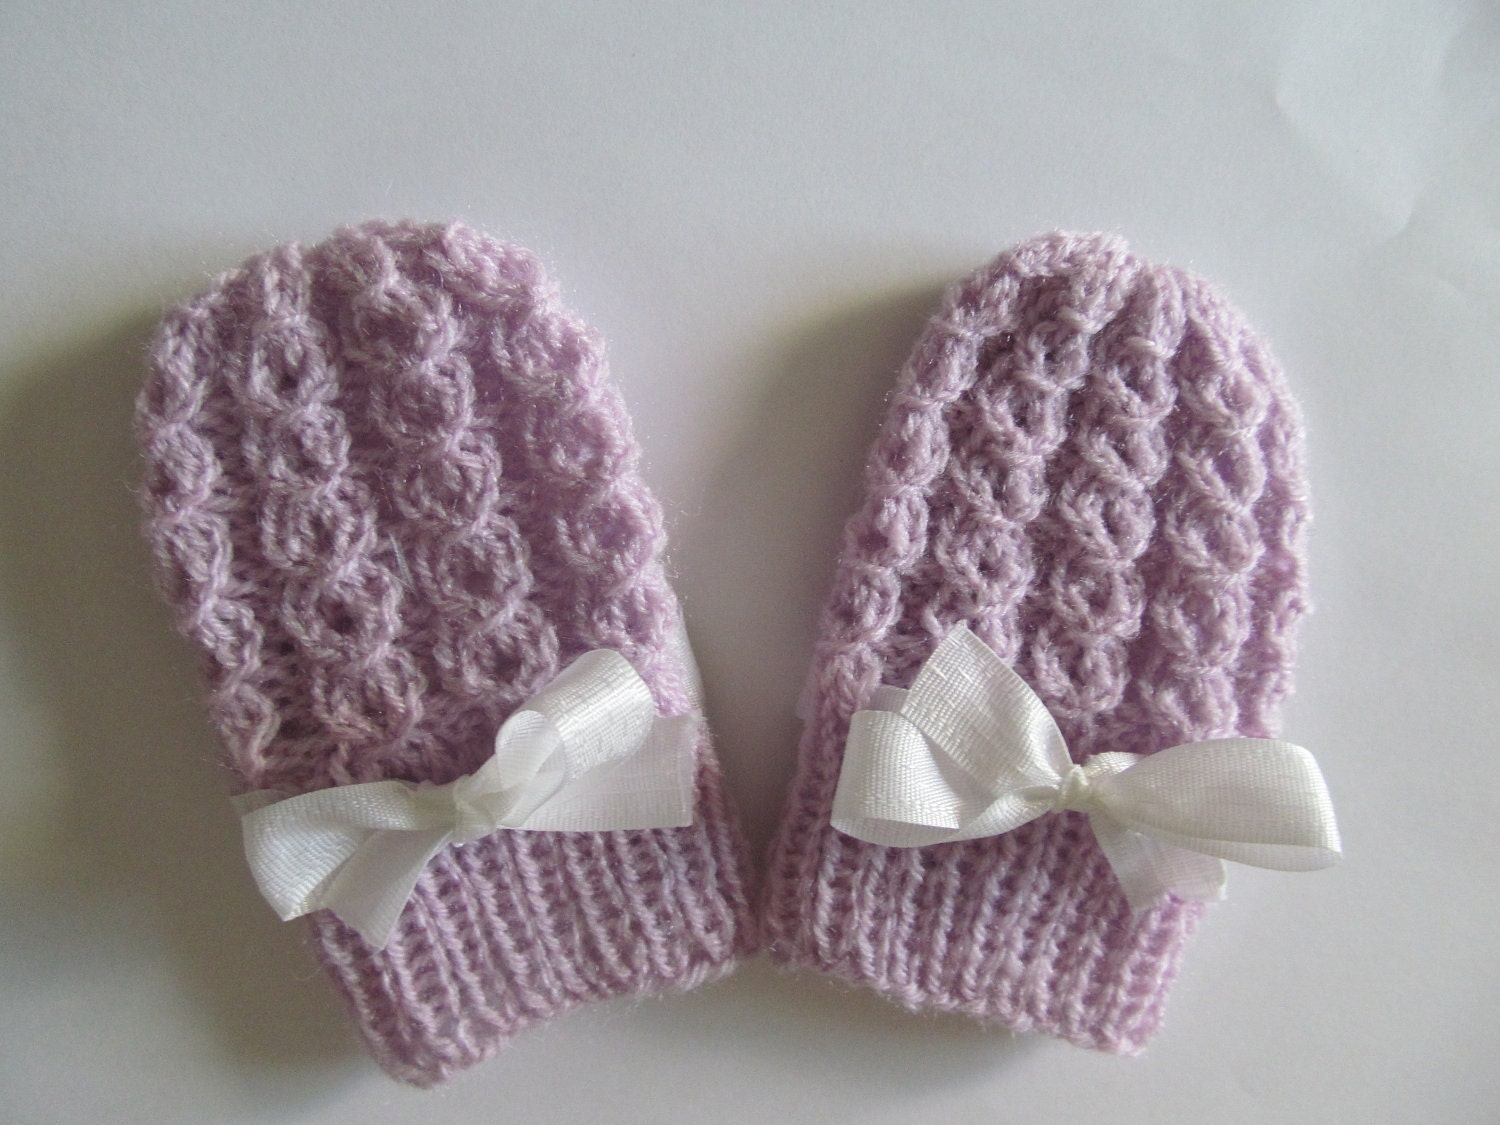 Knitted Baby Mittens Simple Pattern : PDF Knitting PATTERN Baby Thumbless Mittens Infant by Lacywork